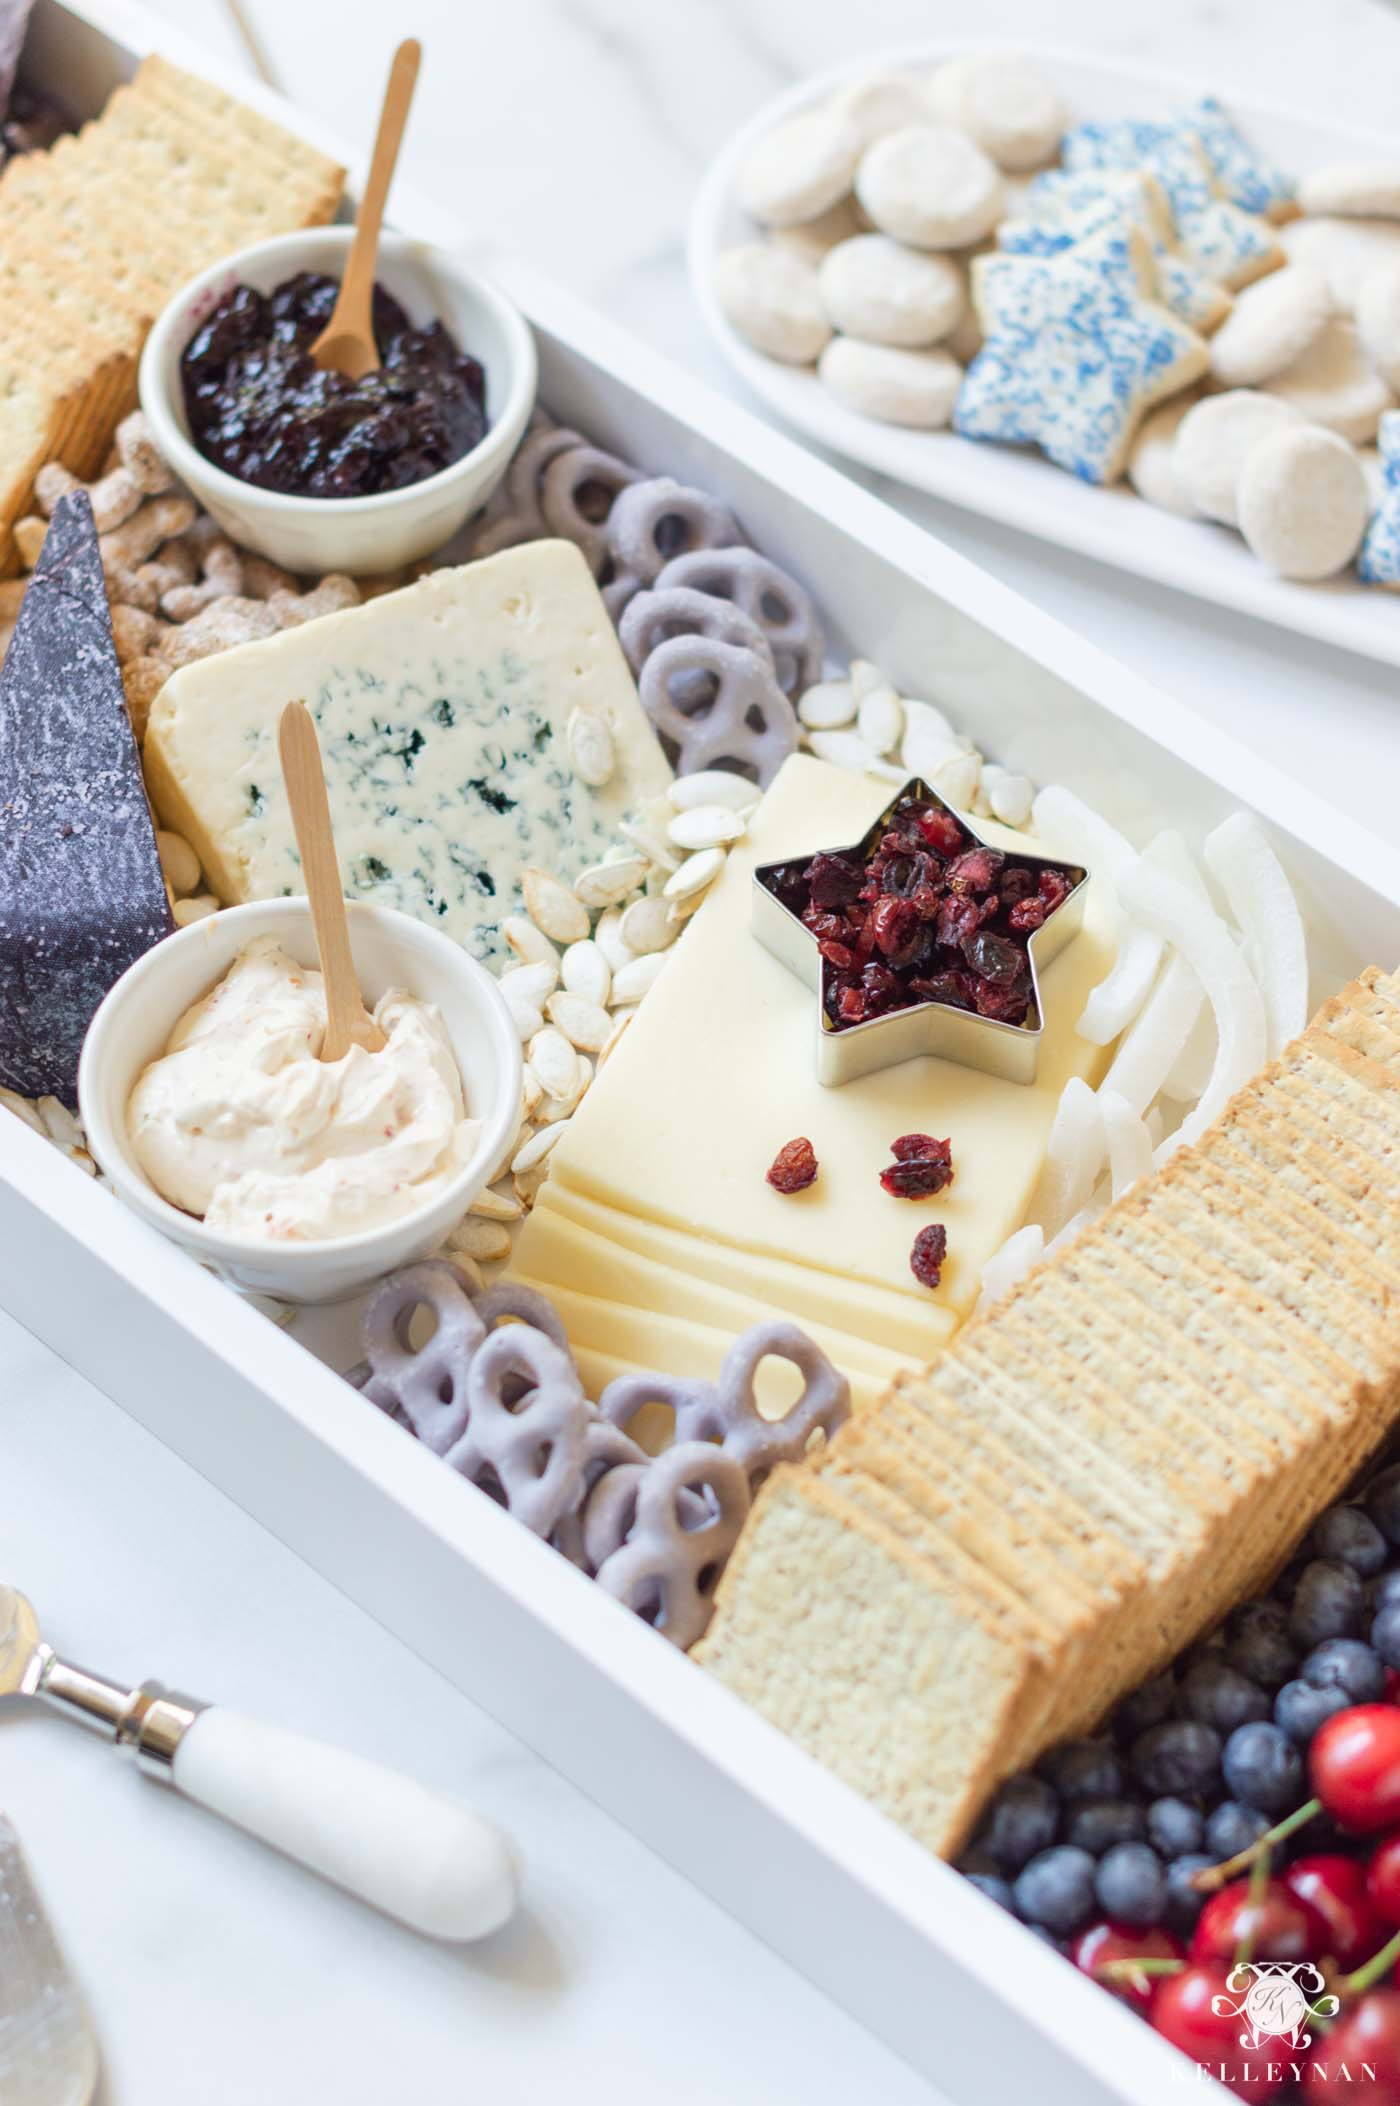 Patriotic Red, White and Blue Cheese and Fruit Board